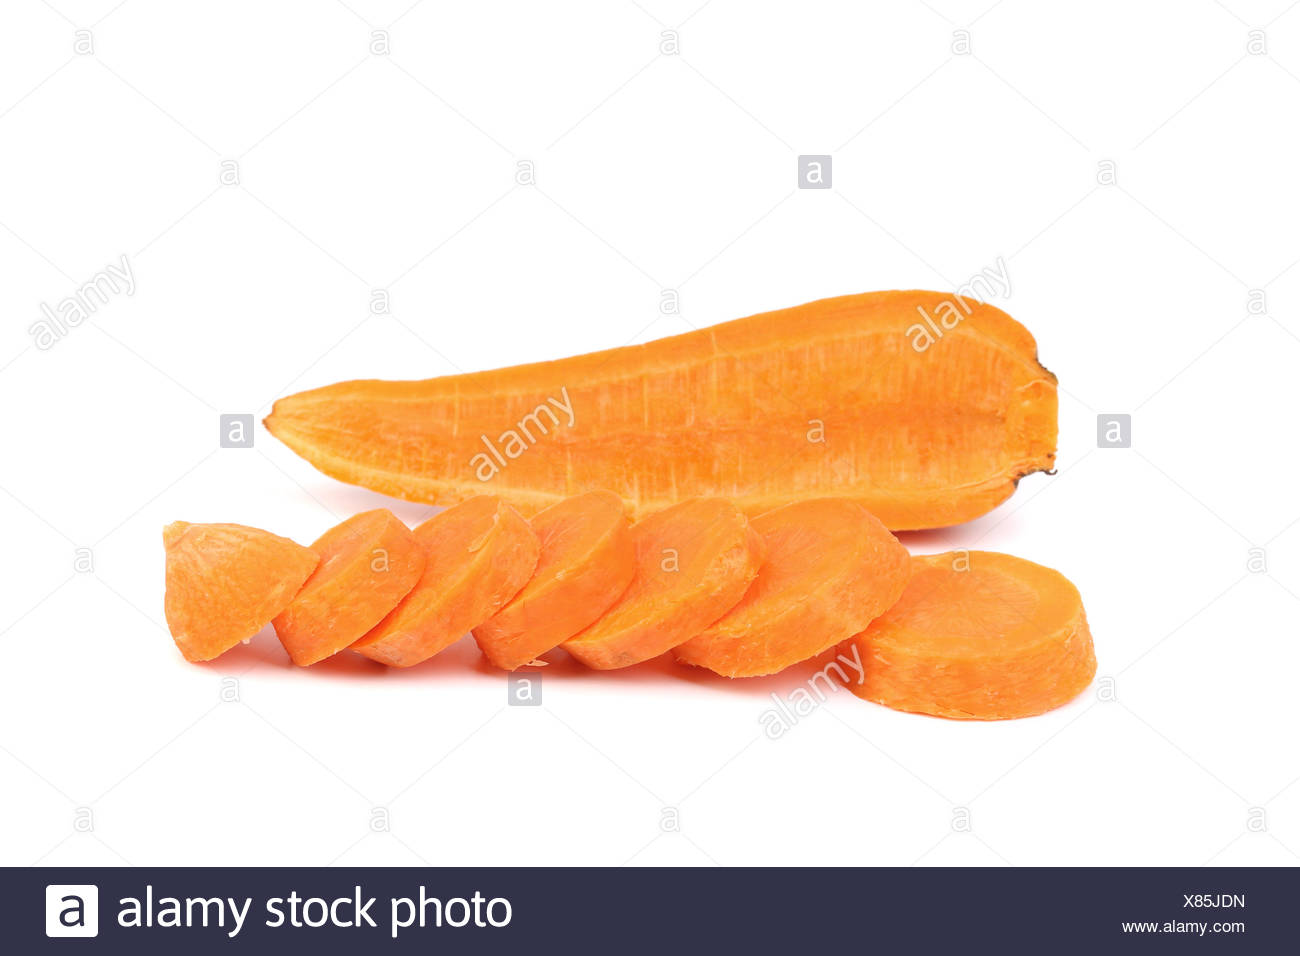 Cross section and slices of Fresh Carrot. - Stock Image